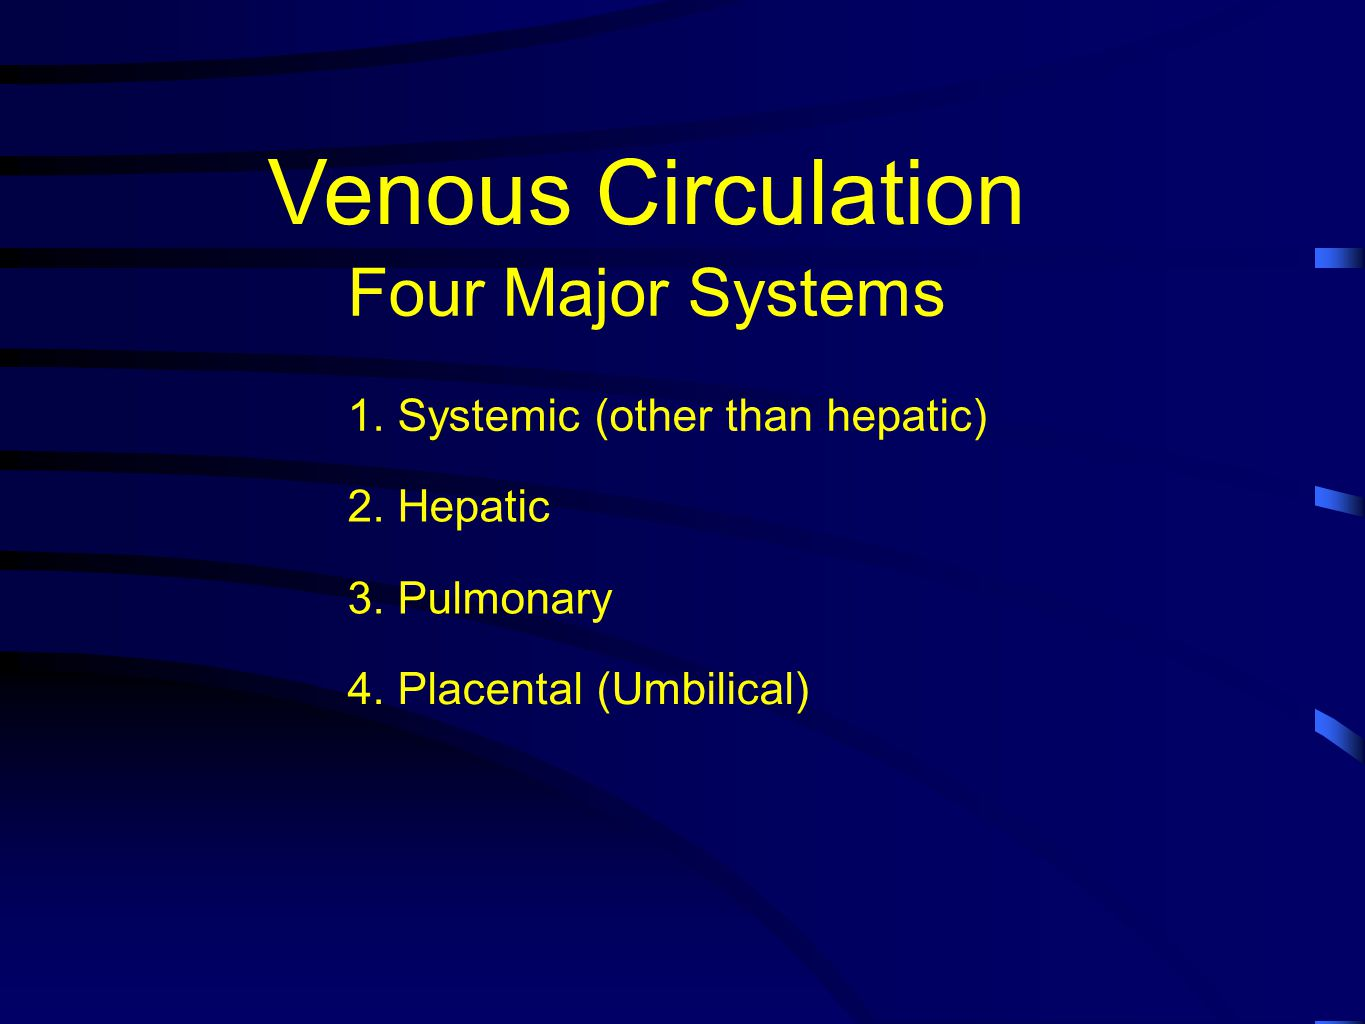 Venous Circulation Four Major Systems 1. Systemic (other than hepatic) 2. Hepatic 3. Pulmonary 4. Placental (Umbilical)